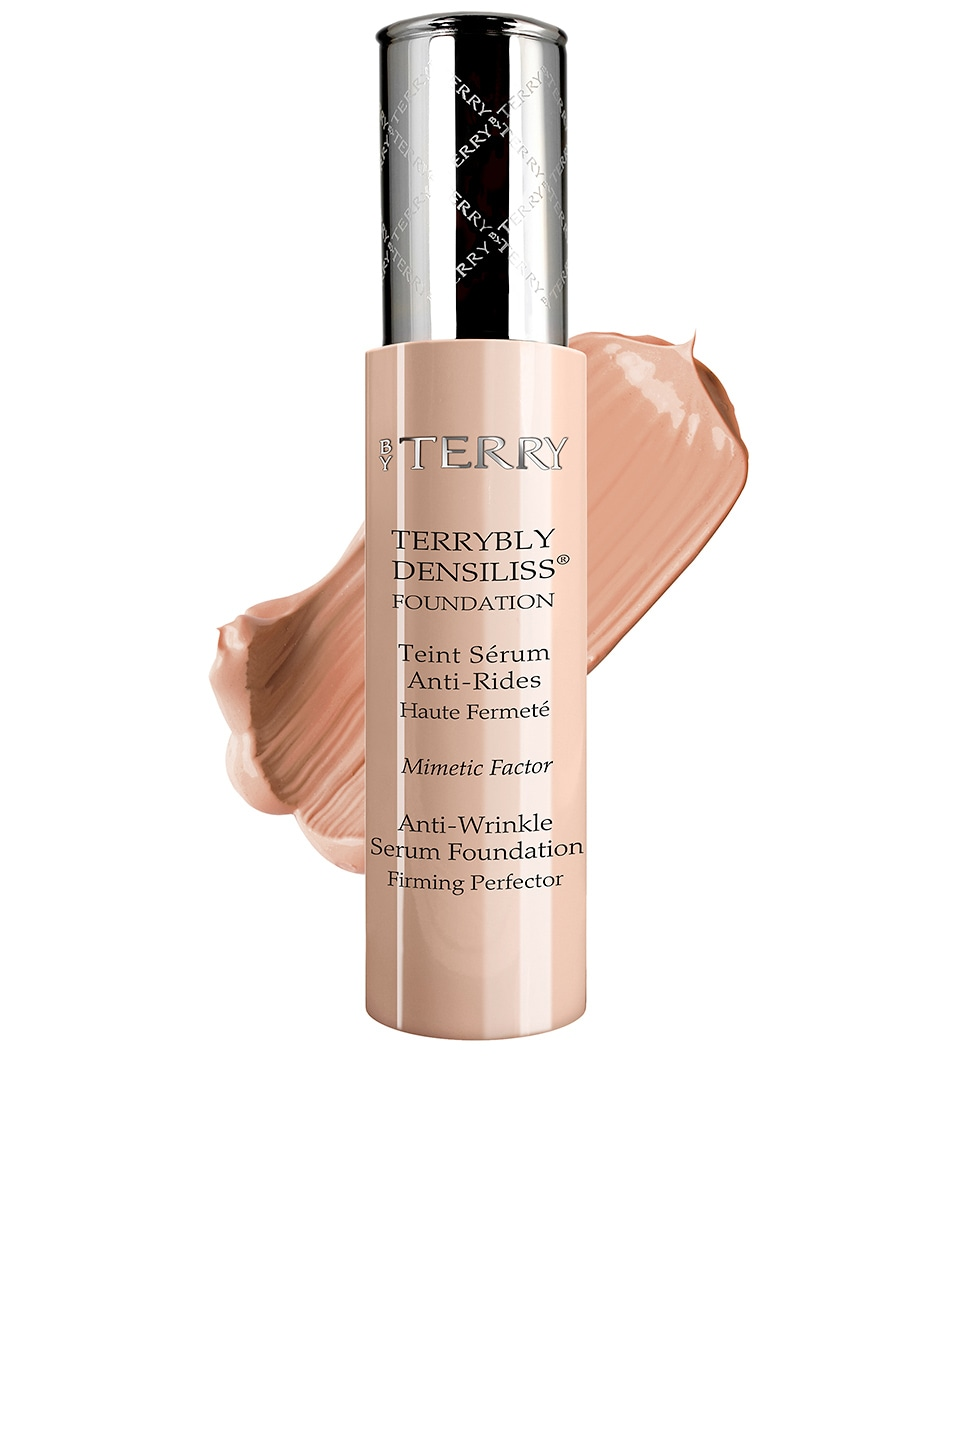 By Terry Terrybly Densiliss Serum Foundation in Light Amber